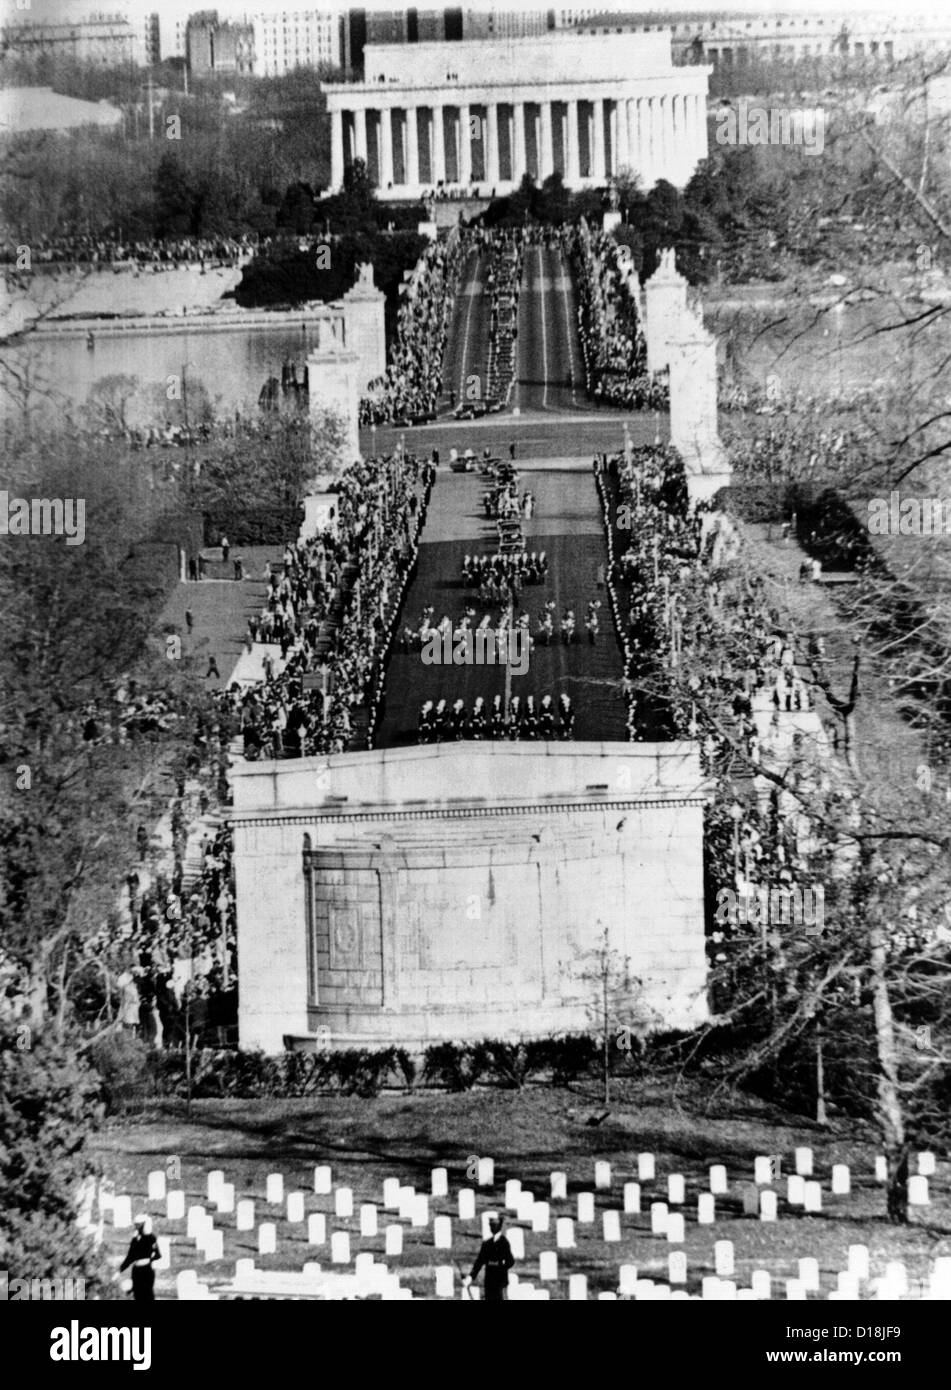 President John Kennedy's funeral procession crossing the Memorial Bridge to Arlington National Cemetery. Nov. 25, - Stock Image